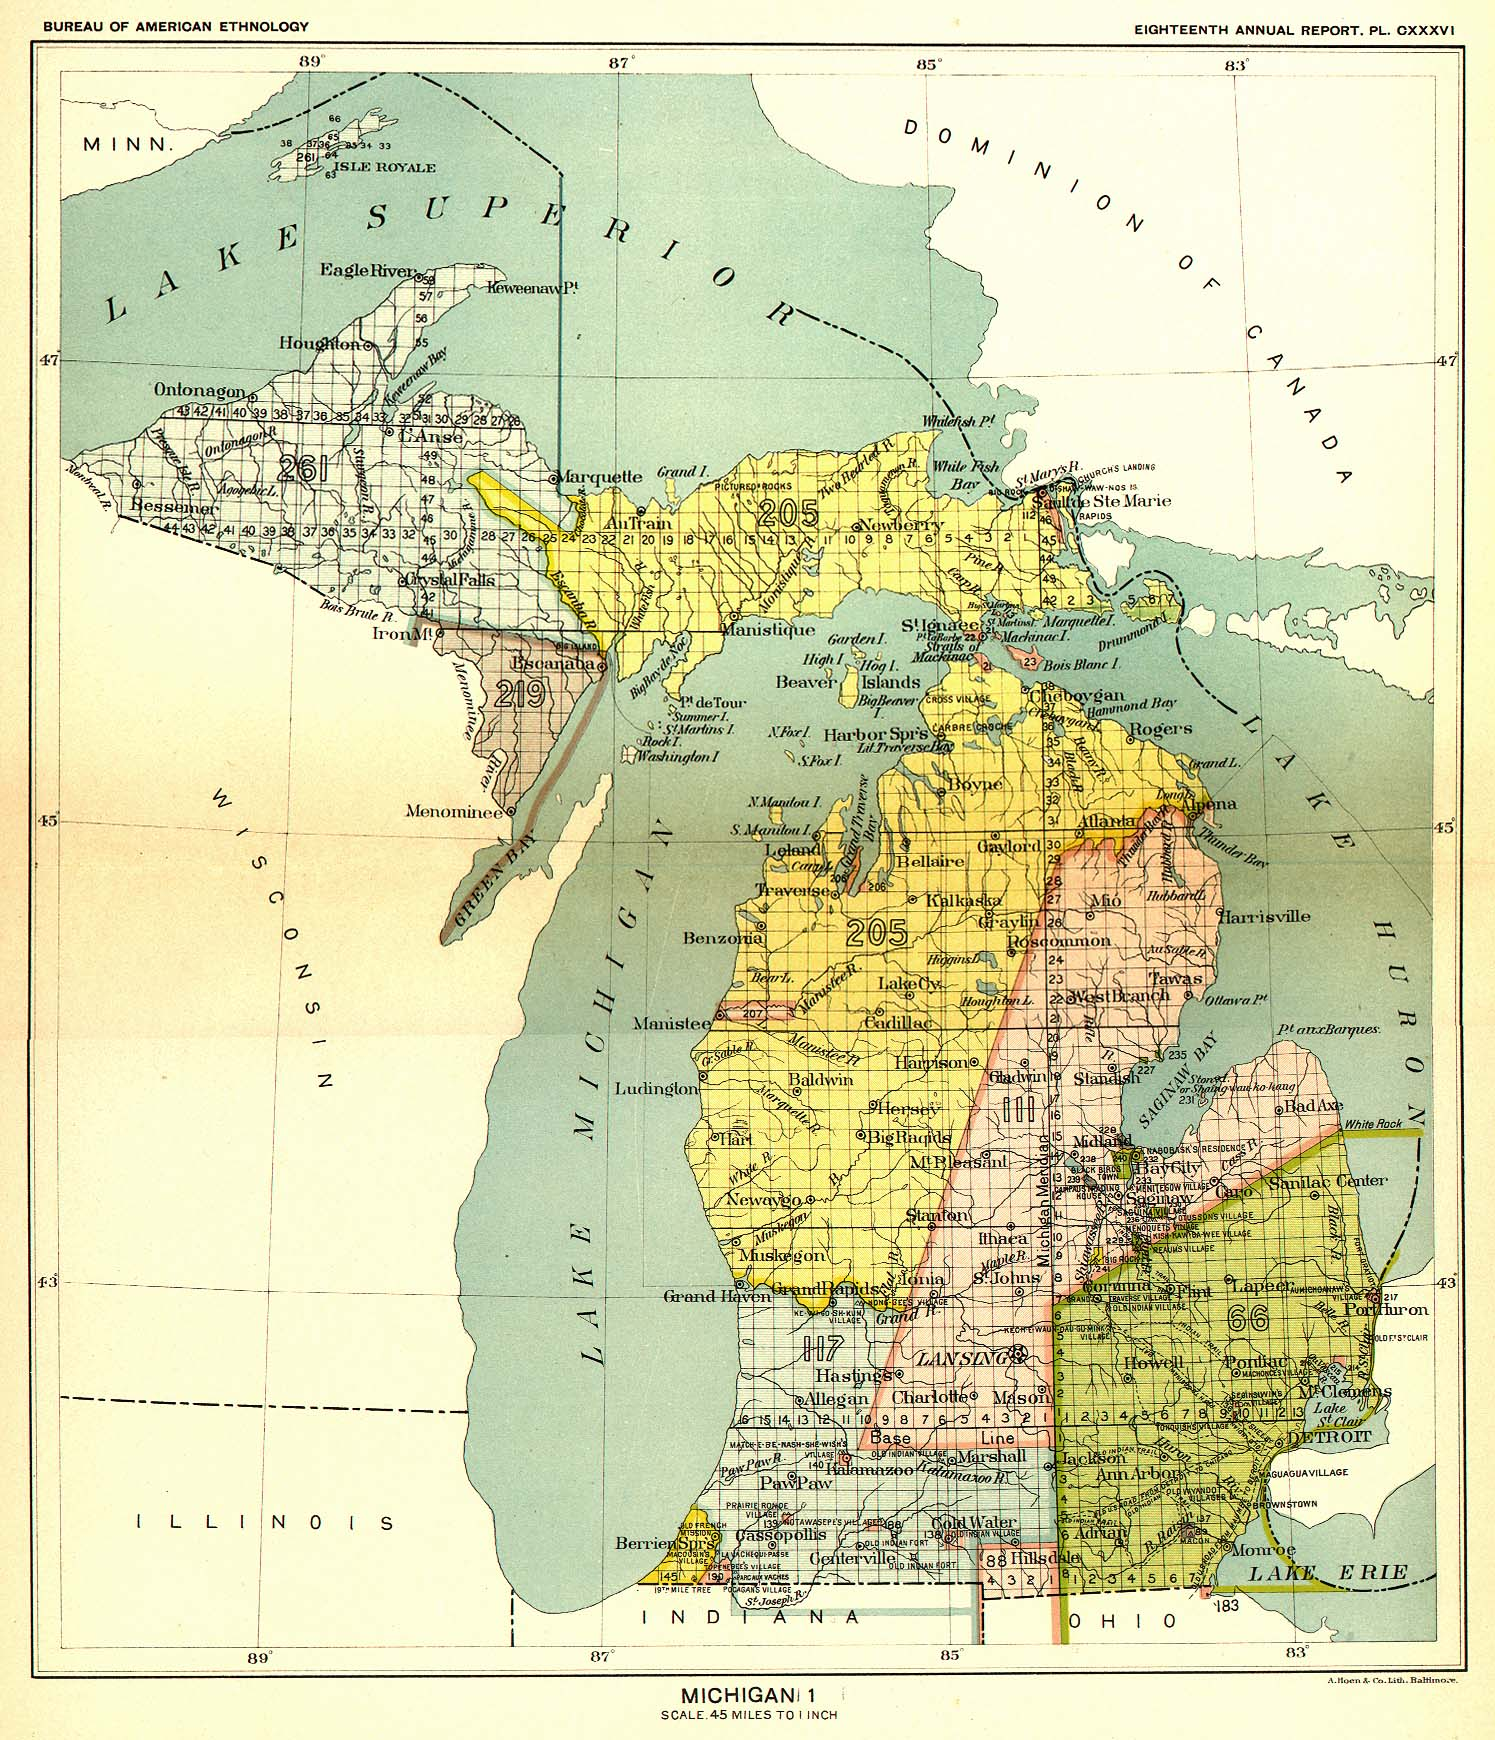 Indian Land Cessions In The U S Michigan  Map  United - Map of us 87